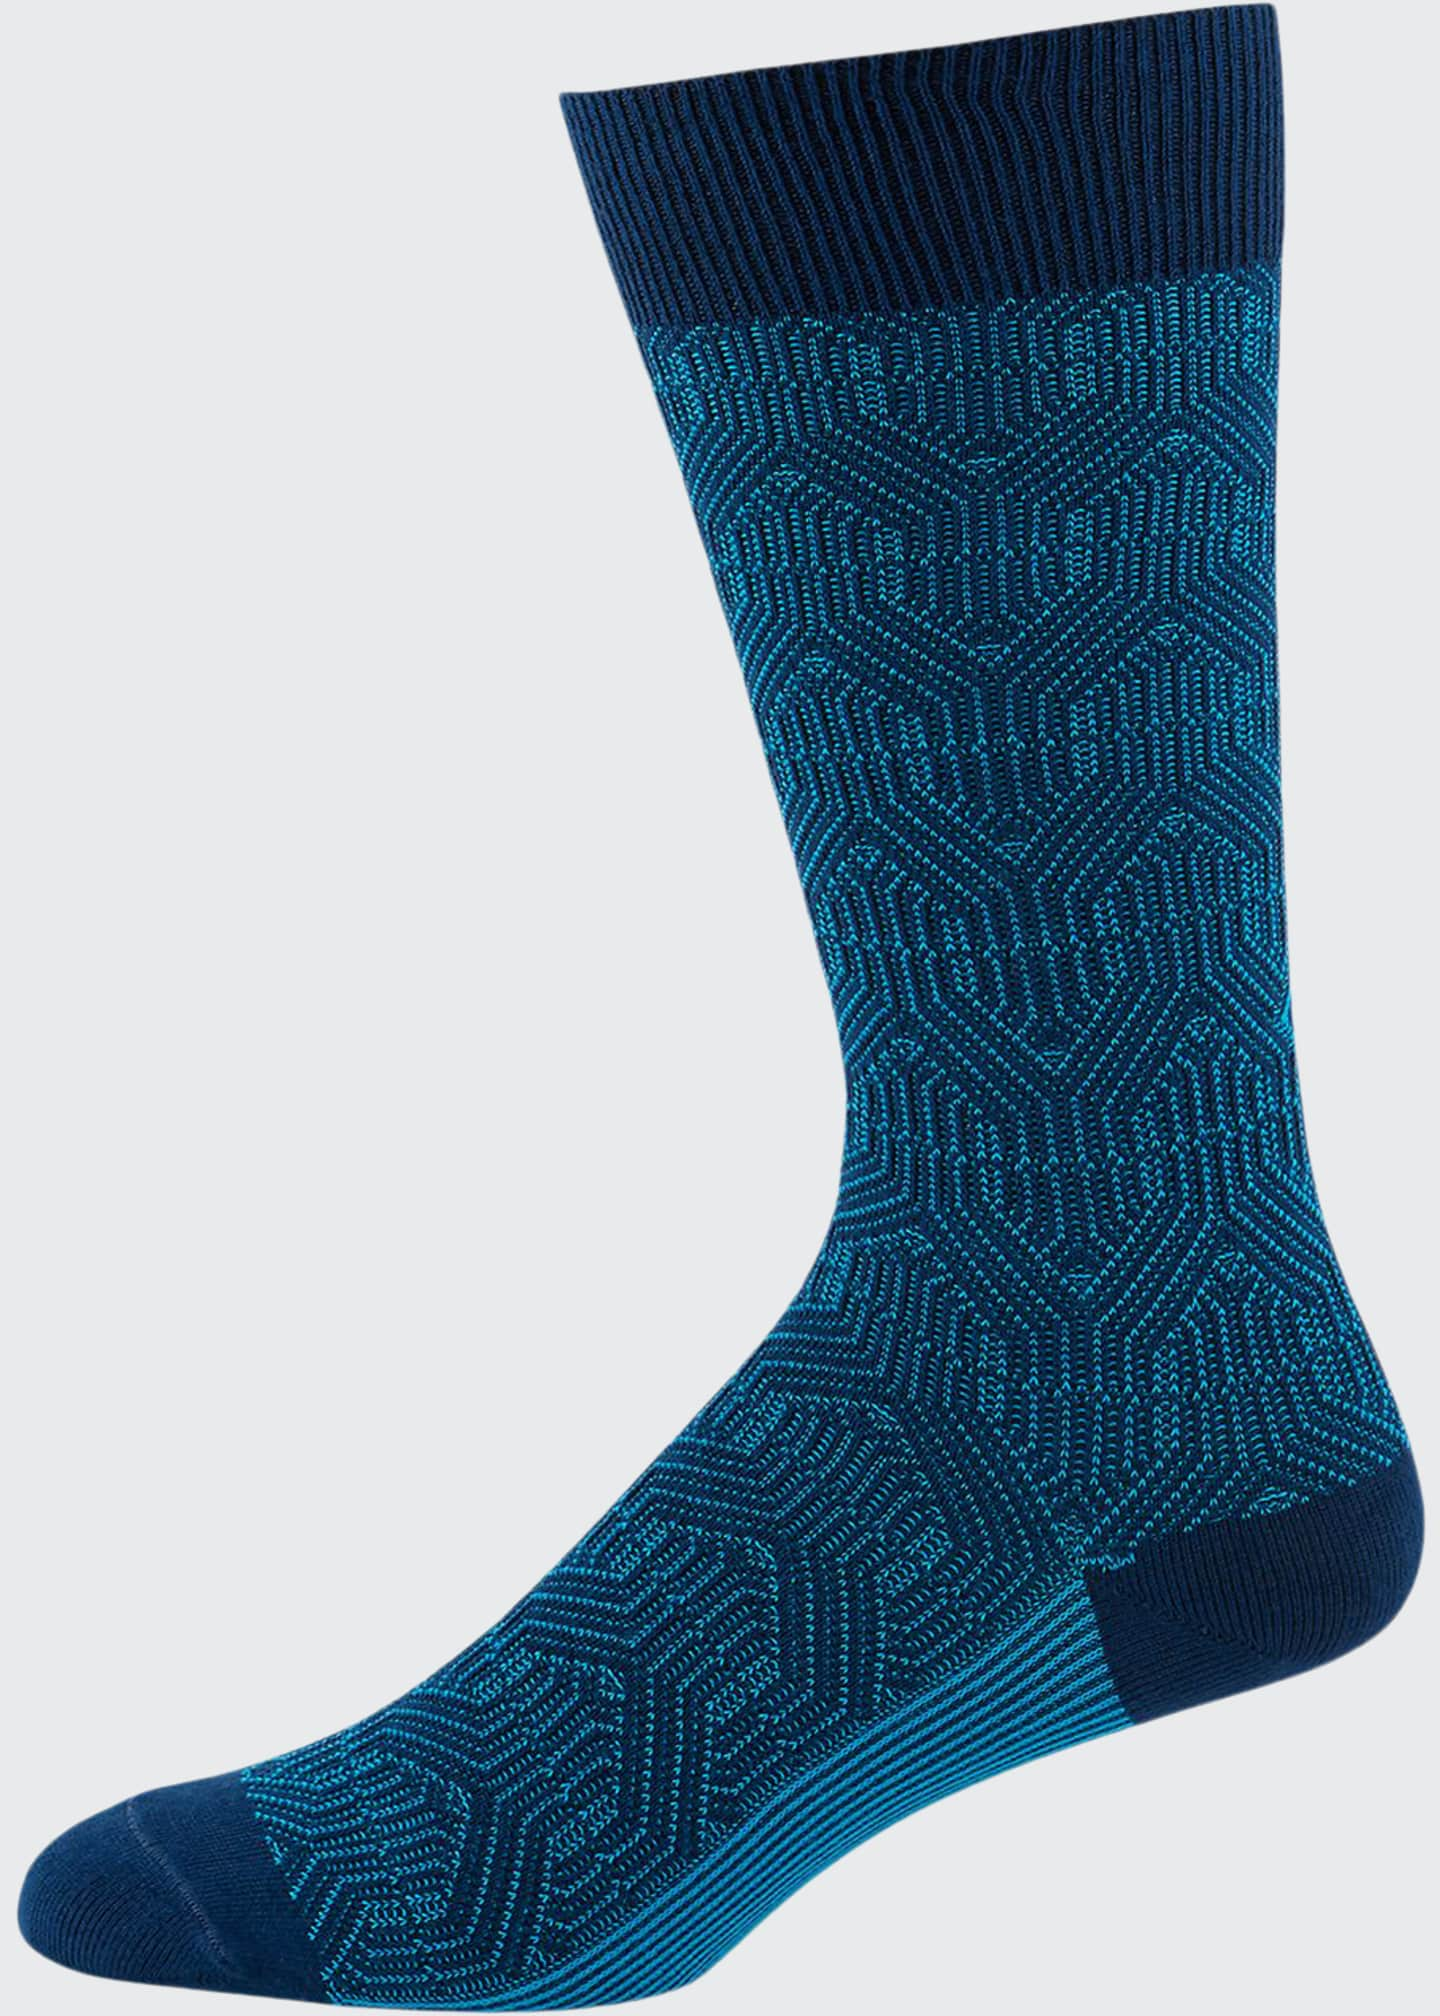 Ace & Everett Men's Russo Cotton-Blend Socks